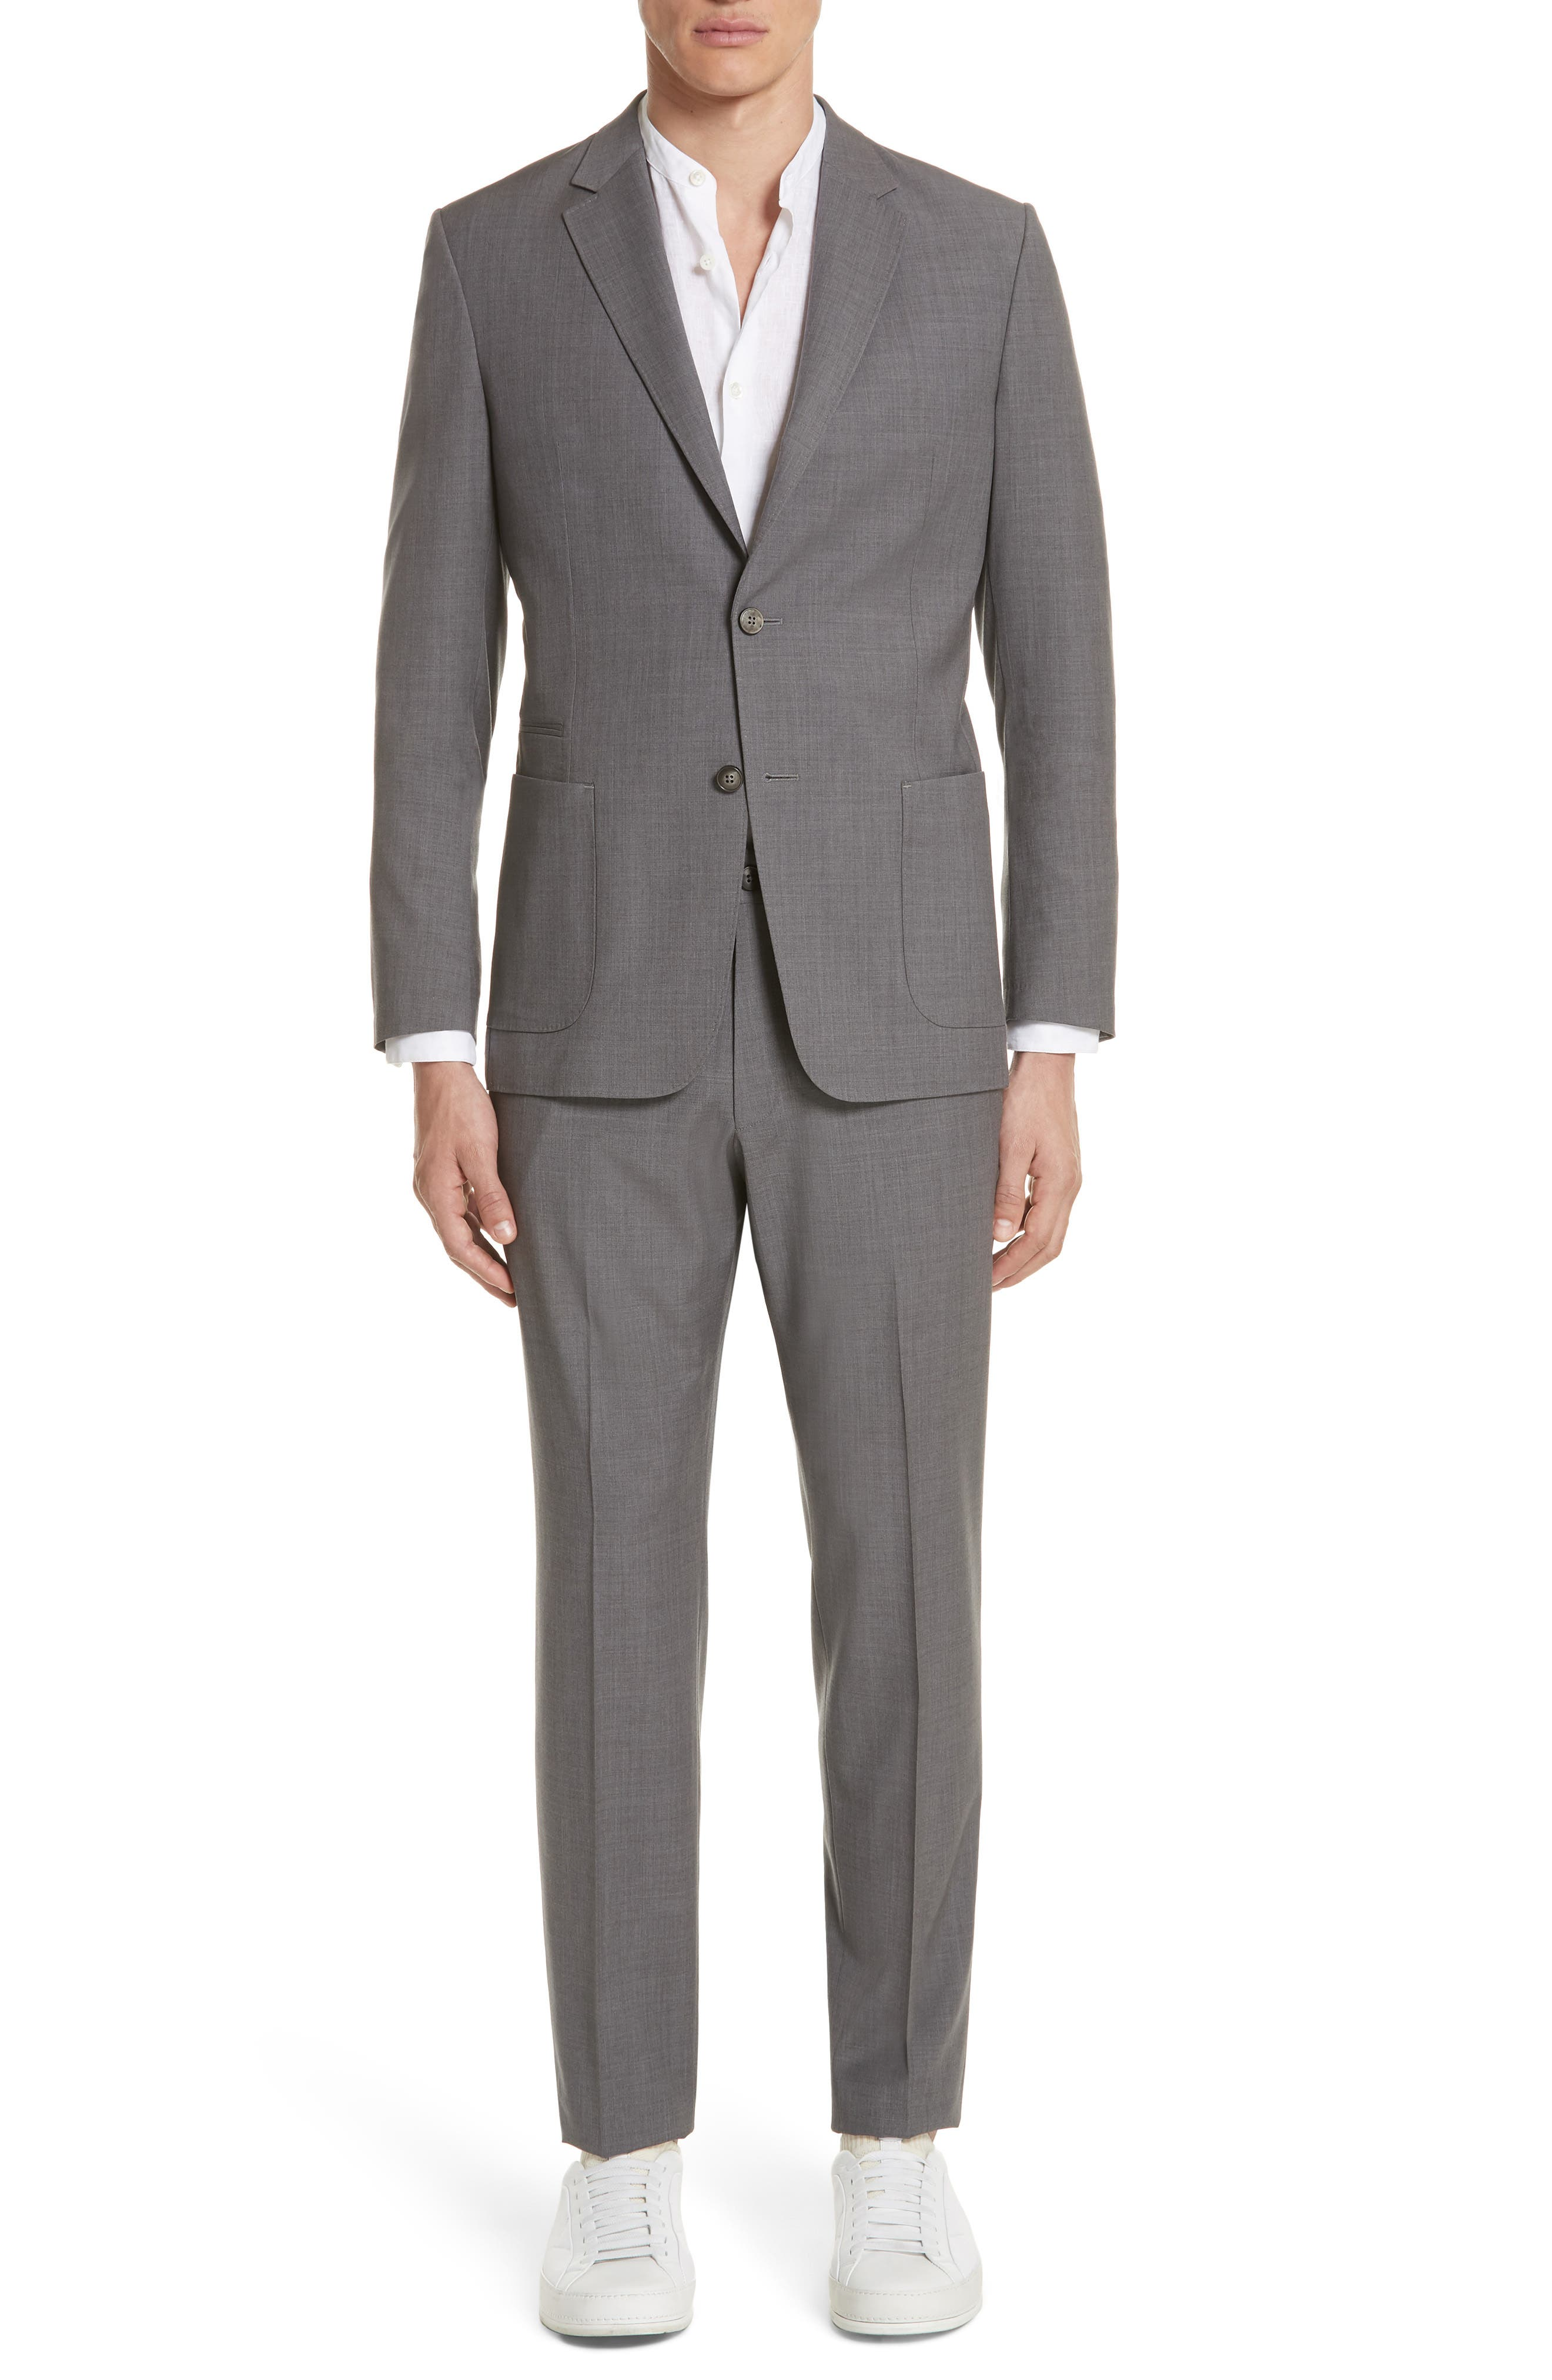 TECHMERINO<sup>™</sup> Wash & Go Trim Fit Solid Wool Suit,                             Main thumbnail 1, color,                             Solid Grey